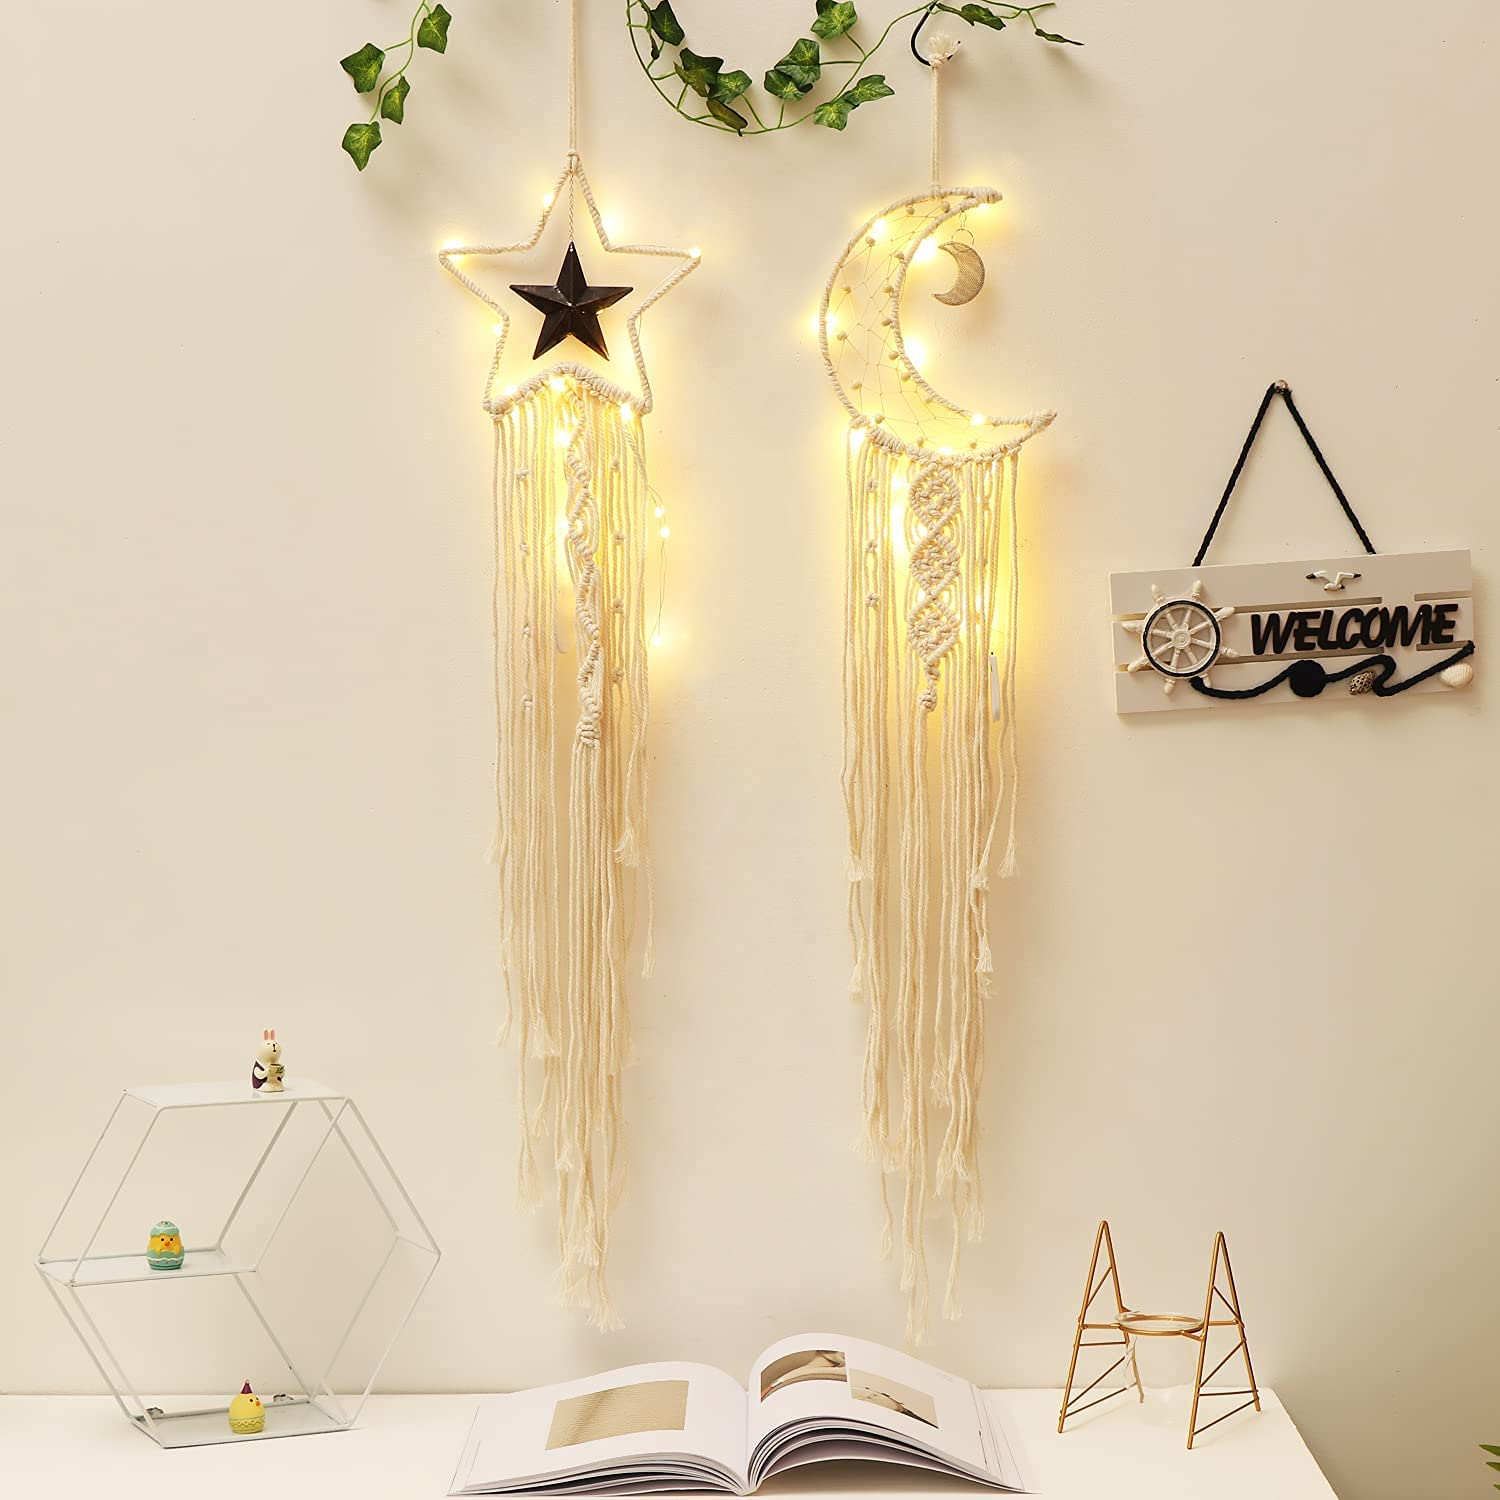 APHISM 2pcs Star Moon Dreamcatcher,Boho Baby Moom Room Decor,Lighted Dream Catcher,Christmas Decorations,Home Decor Gifts for Mom, for Women Nursery Decor,Interesting Finds Wall Decor